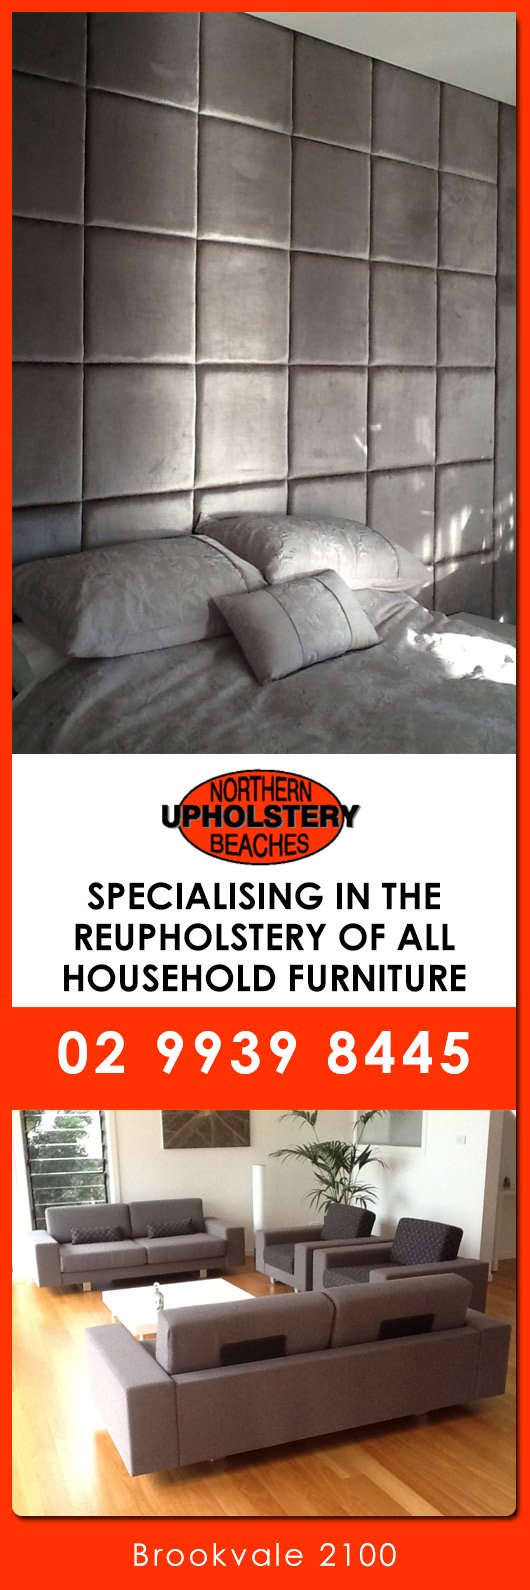 Northern Beaches Upholstery Promotion